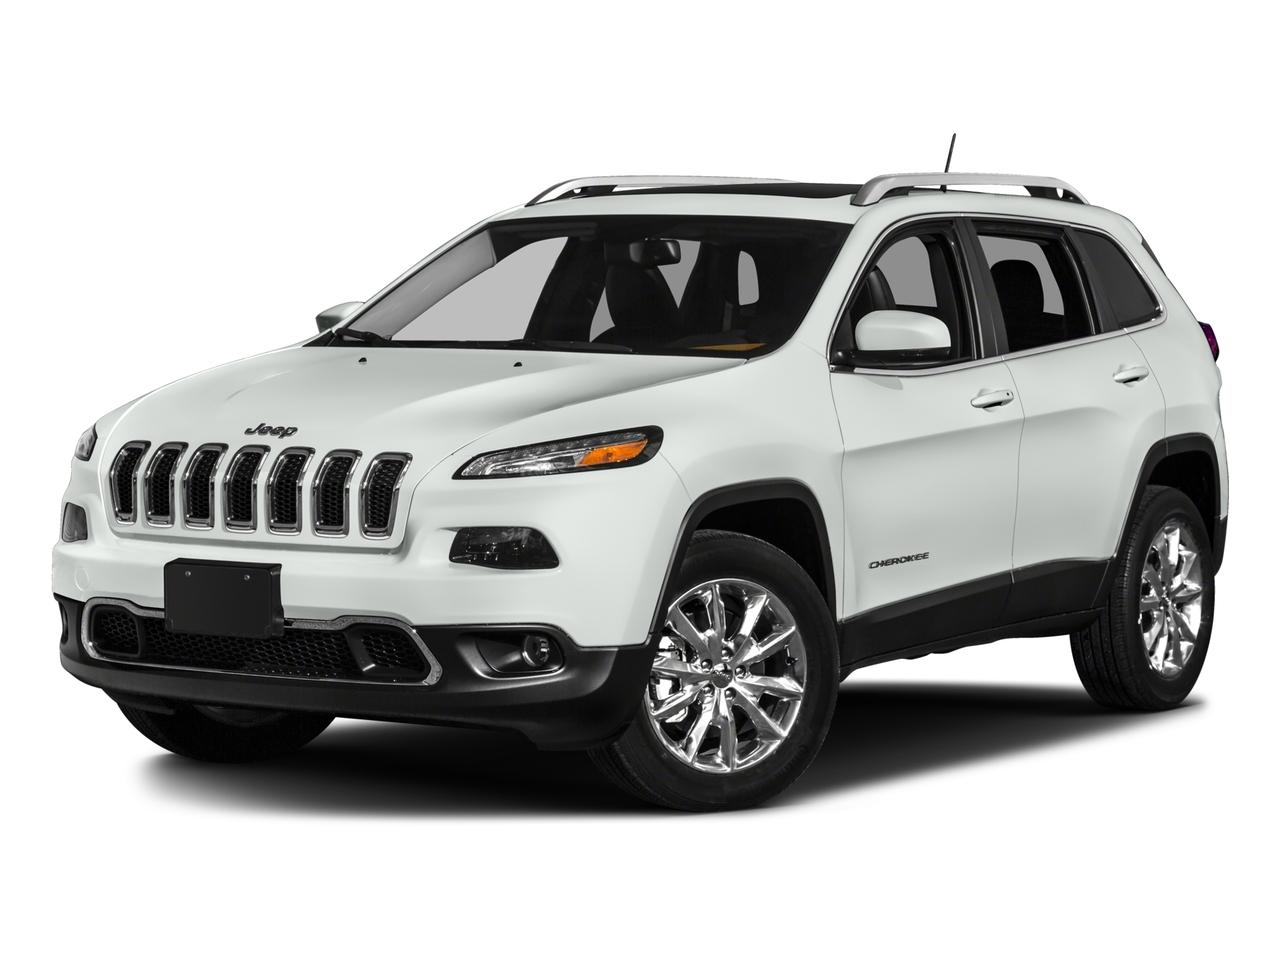 2017 Jeep Cherokee Vehicle Photo in Akron, OH 44312